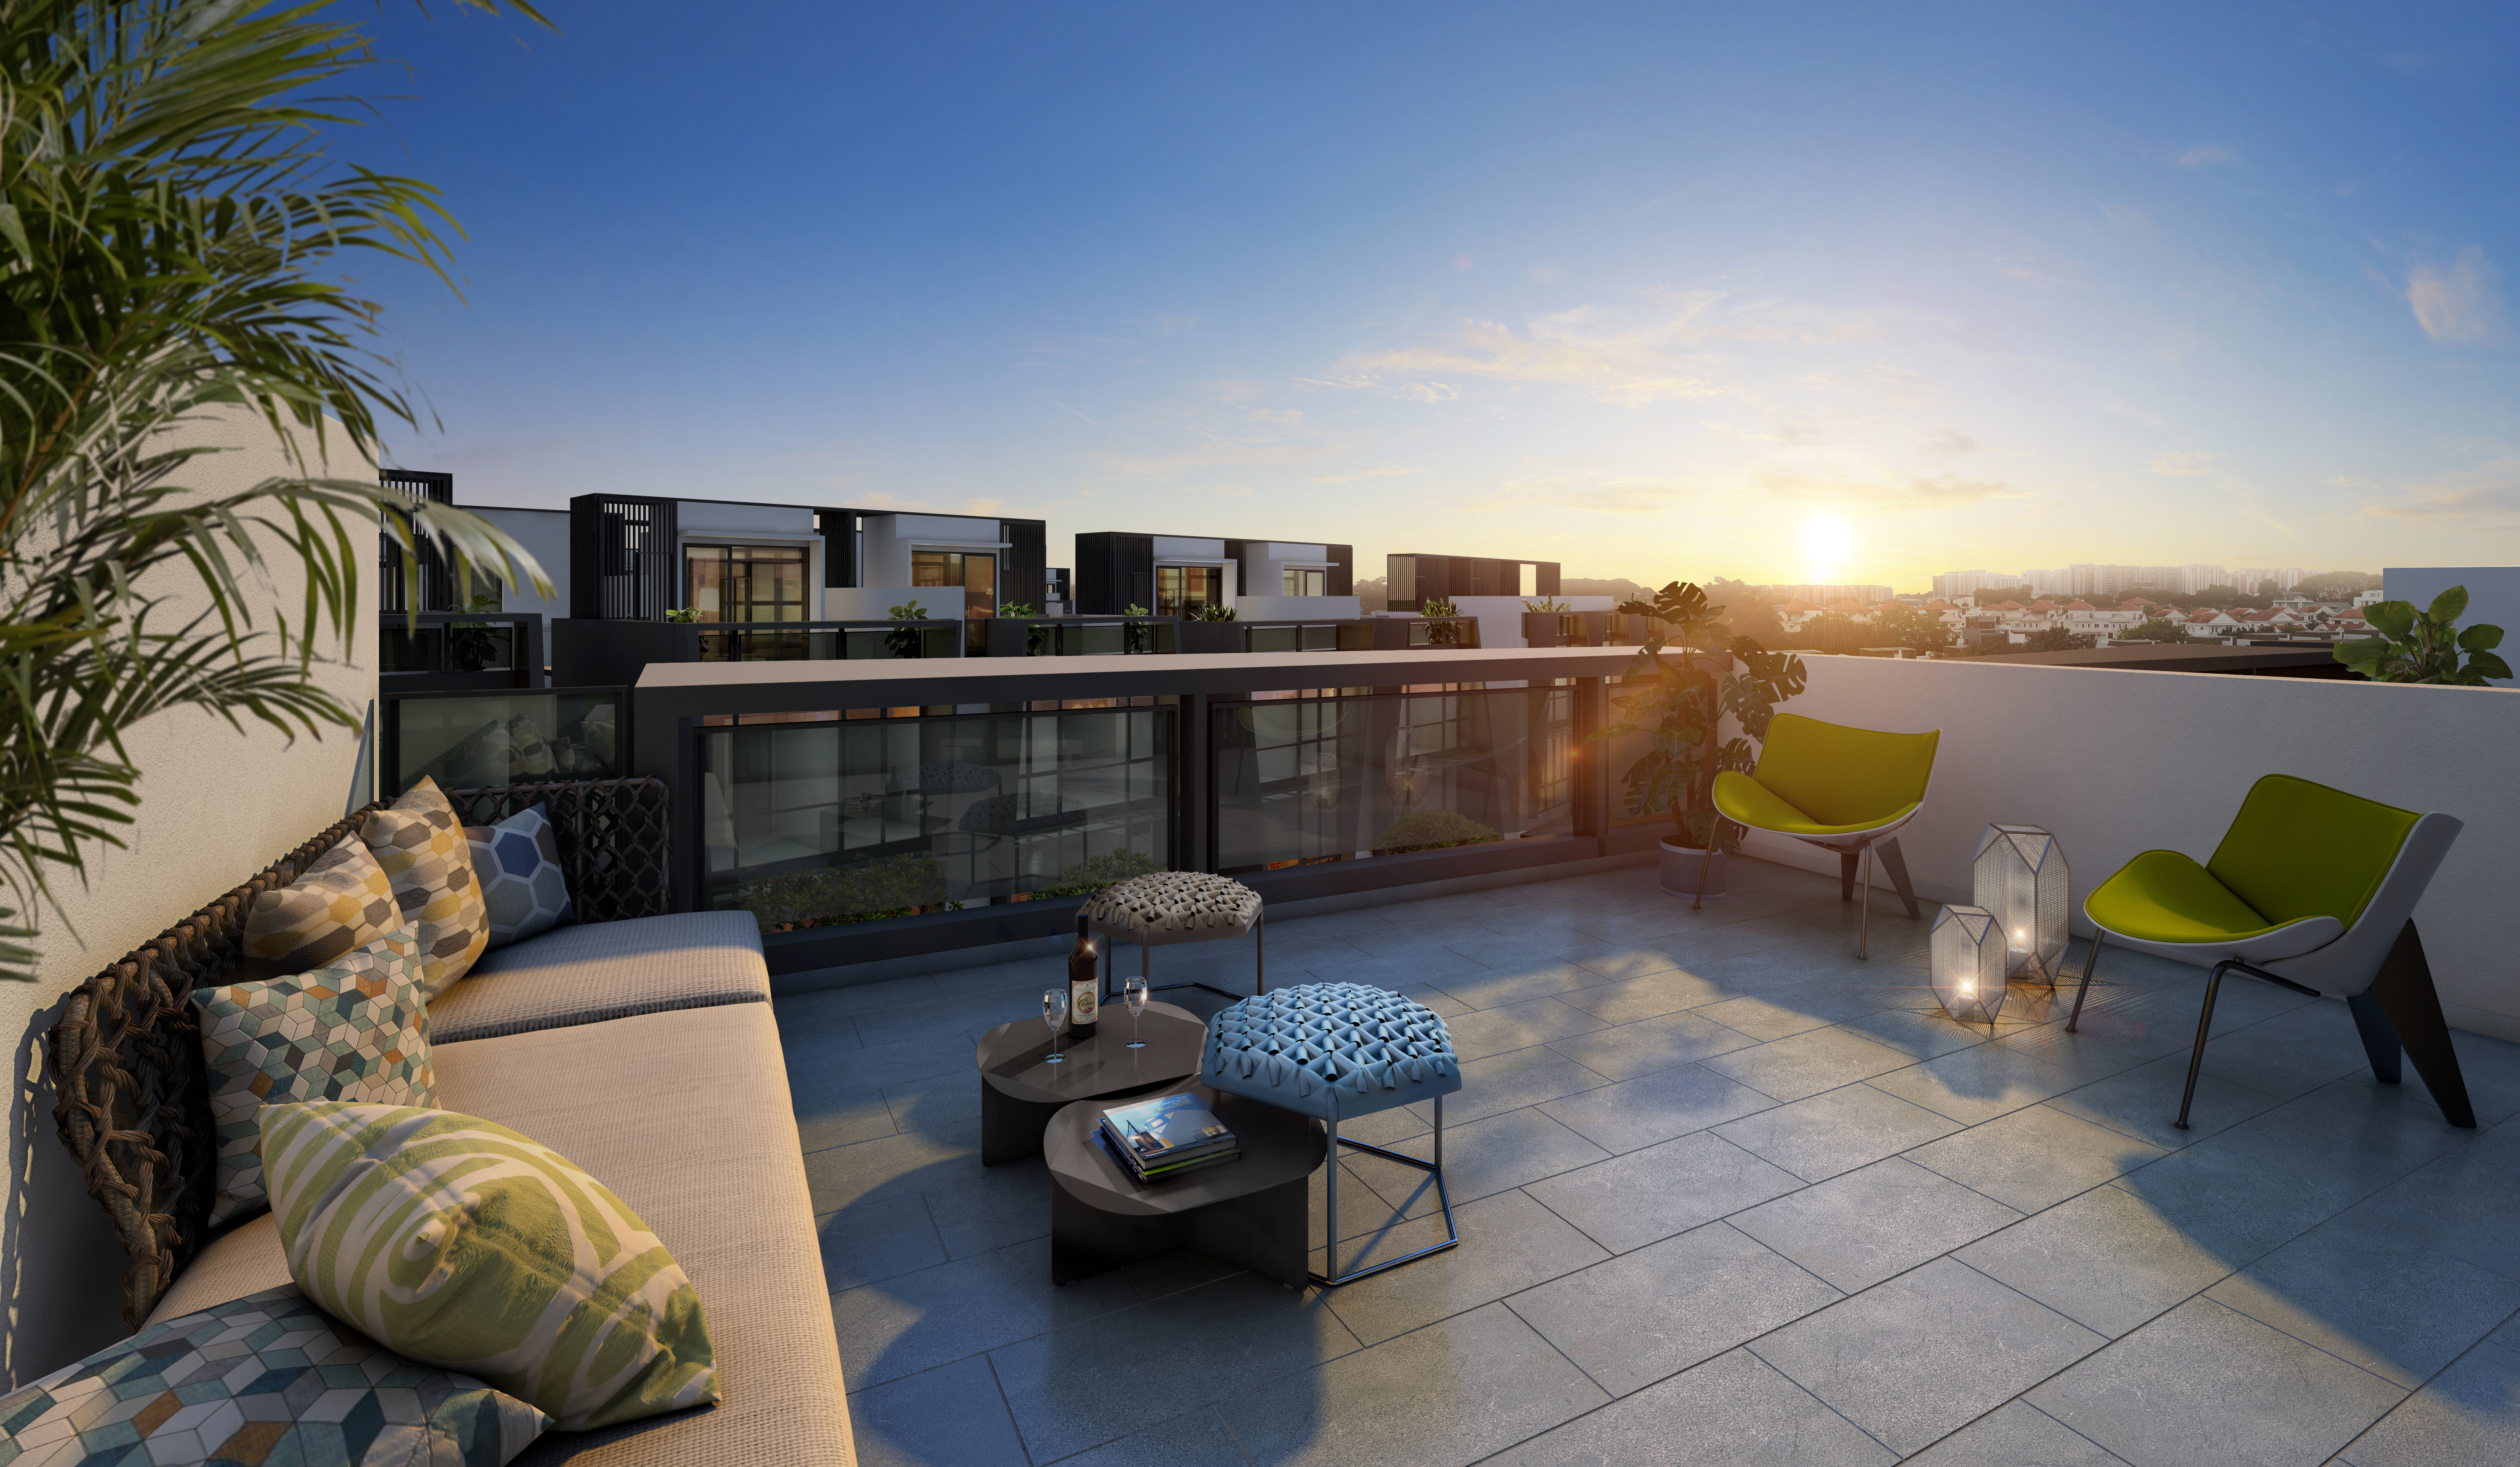 Belgravia Green Roof Terrace